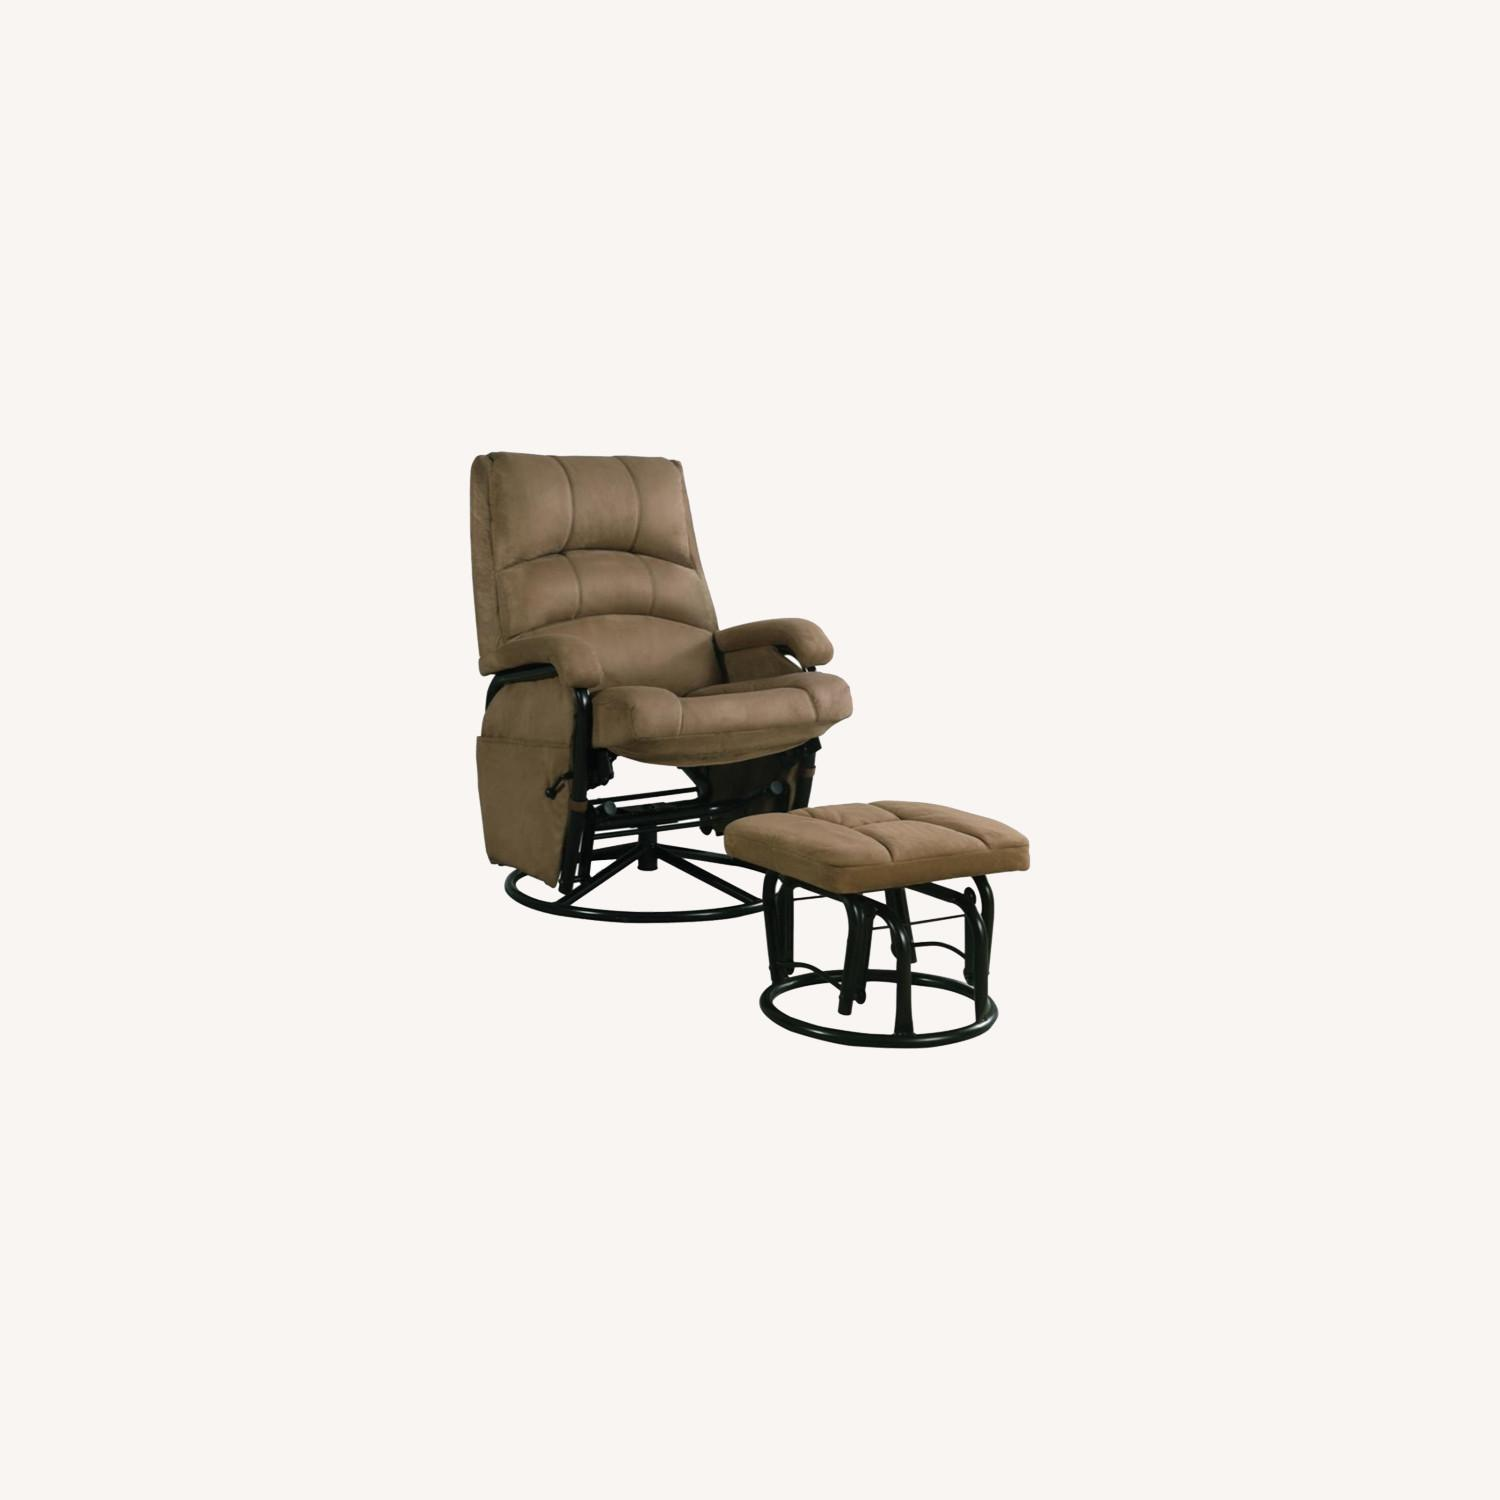 Glider W/ Ottoman In Brown Microfiber Upholstery - image-6